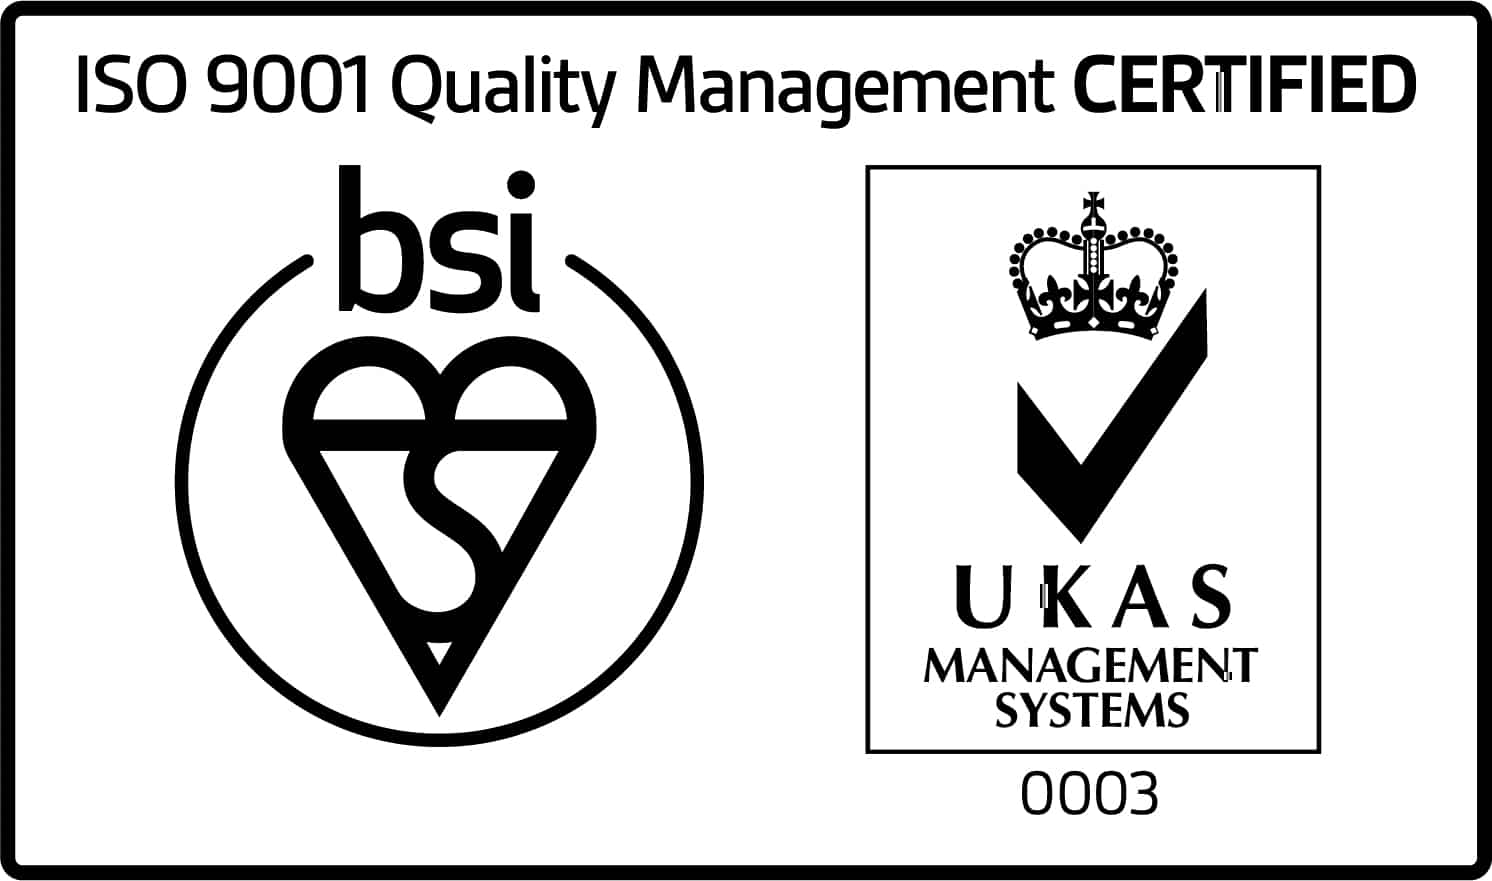 ISO 9001 Quality Management Certified Logo